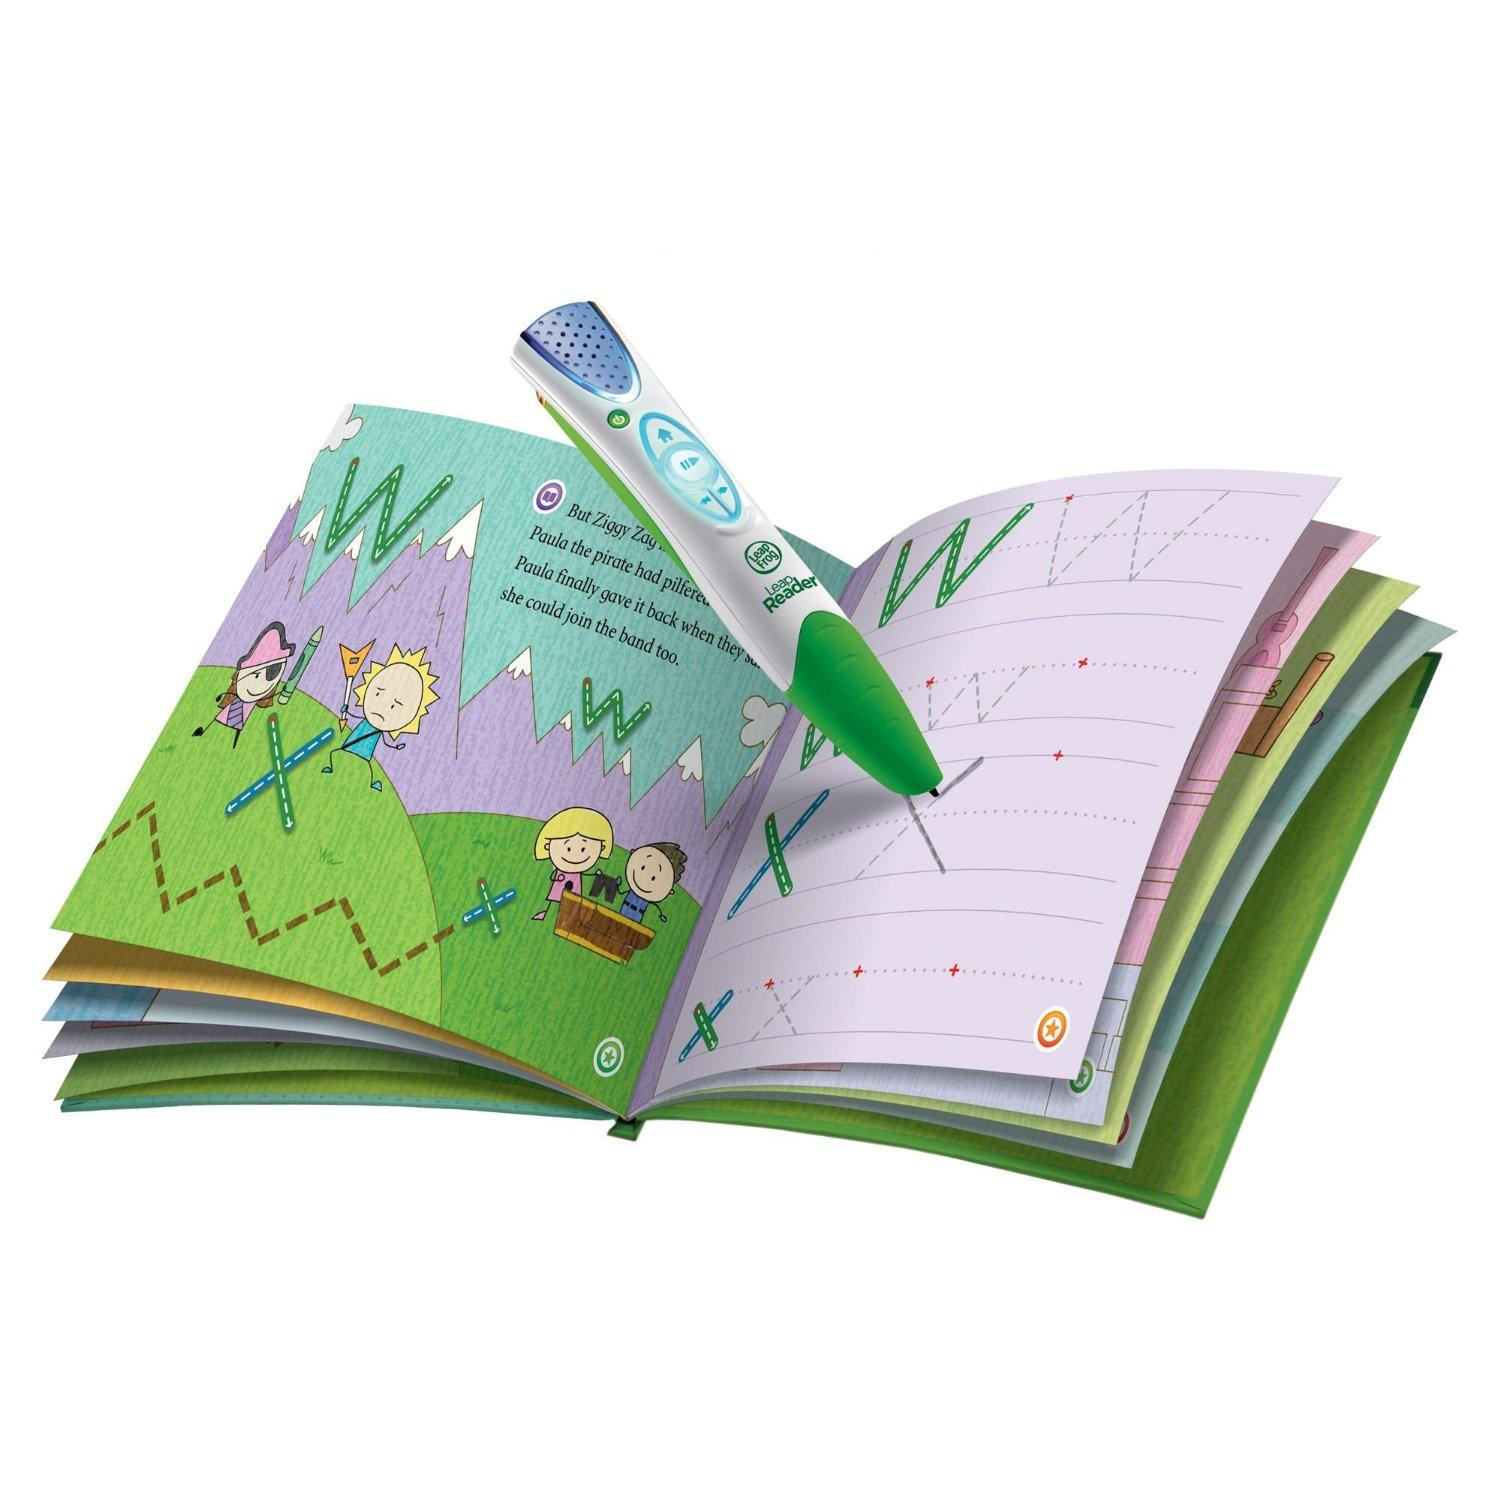 Best seller! LeapFrog LeapReader Reading and Writing System, Green